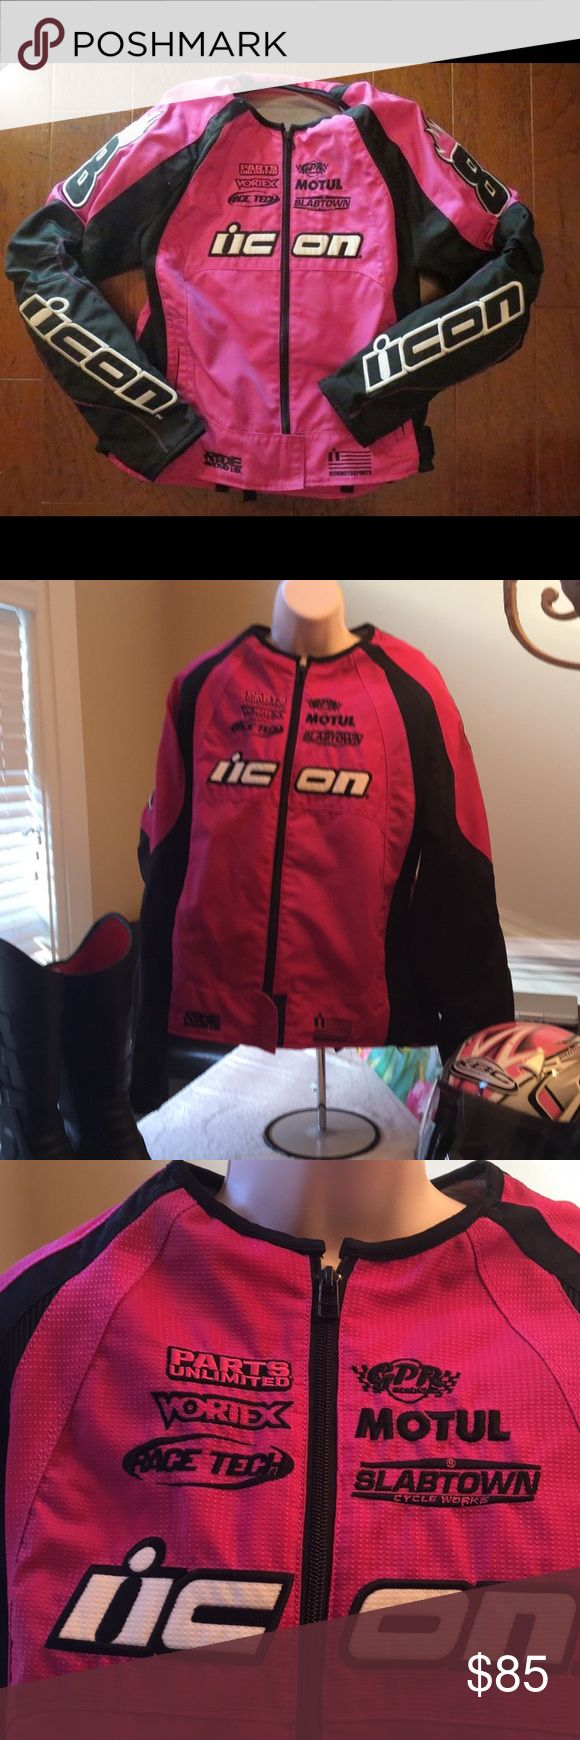 Icon Pink Motorsports Jacket Pink and Black Motorsports Jacket. Has pockets on both sides and in the rear of the Jacket. Padding in the shoulders and elbows. This Jacket has only been worn a couple of times. Size XL but it runs small. ICON Jackets & Coats